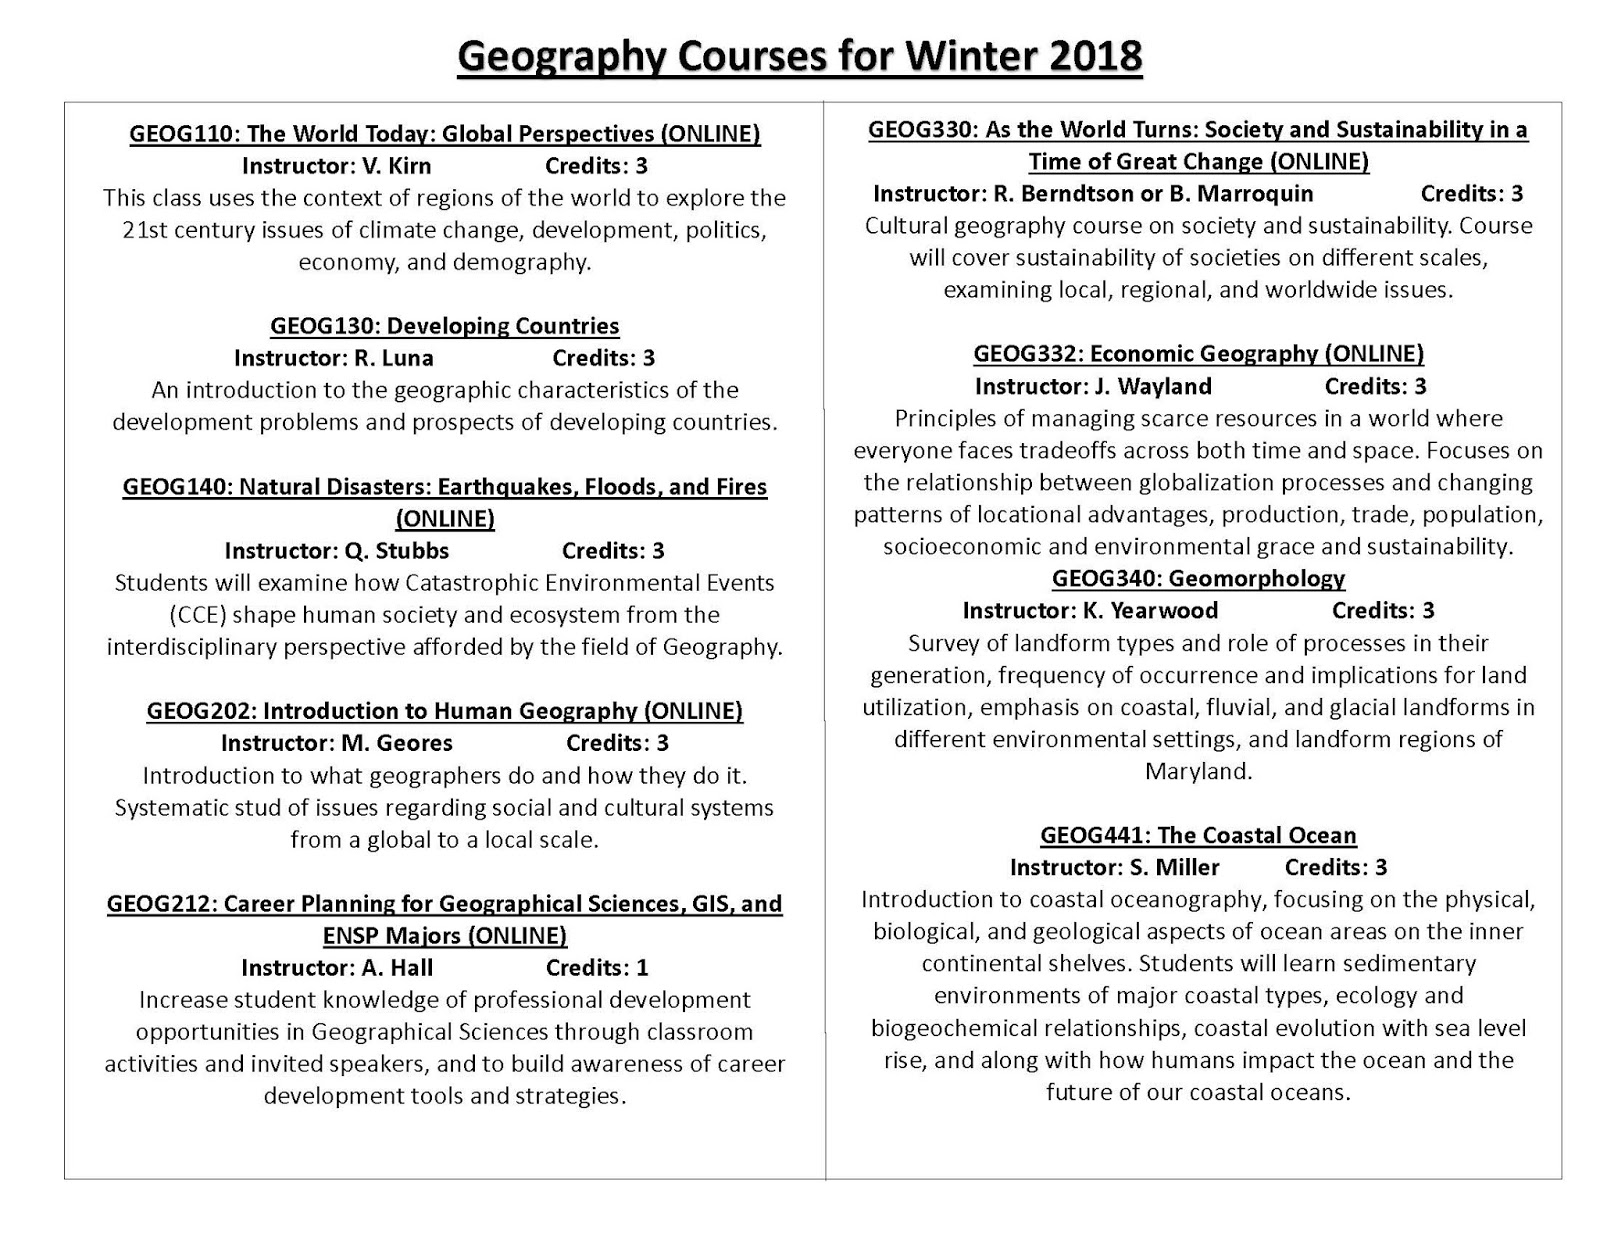 BSOS Undergraduates Blog: Geography Courses for Winter 2018